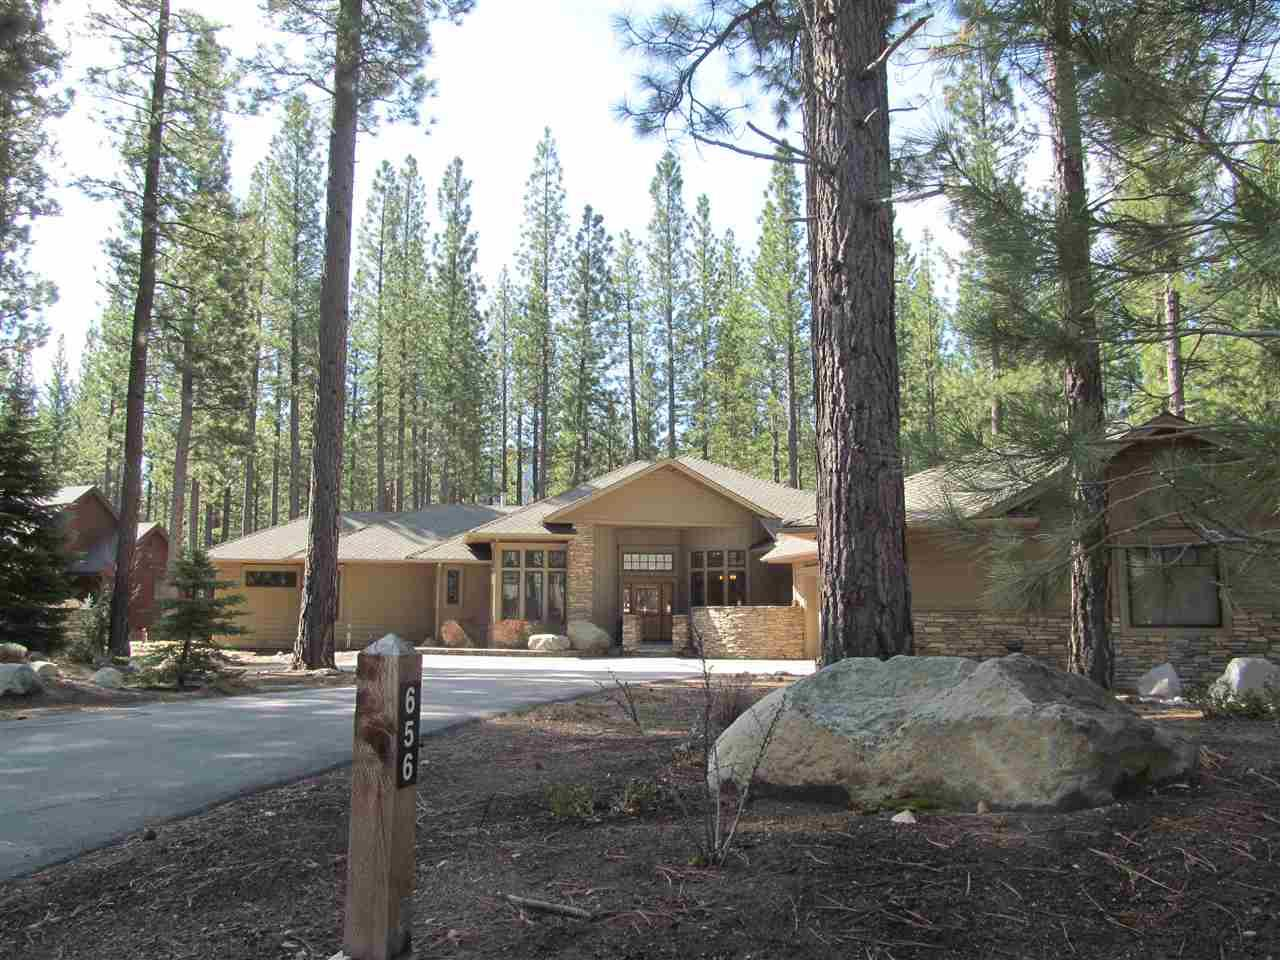 656 Miner\'s Passage, Clio, CA — MLS# 201800272 — Coldwell Banker